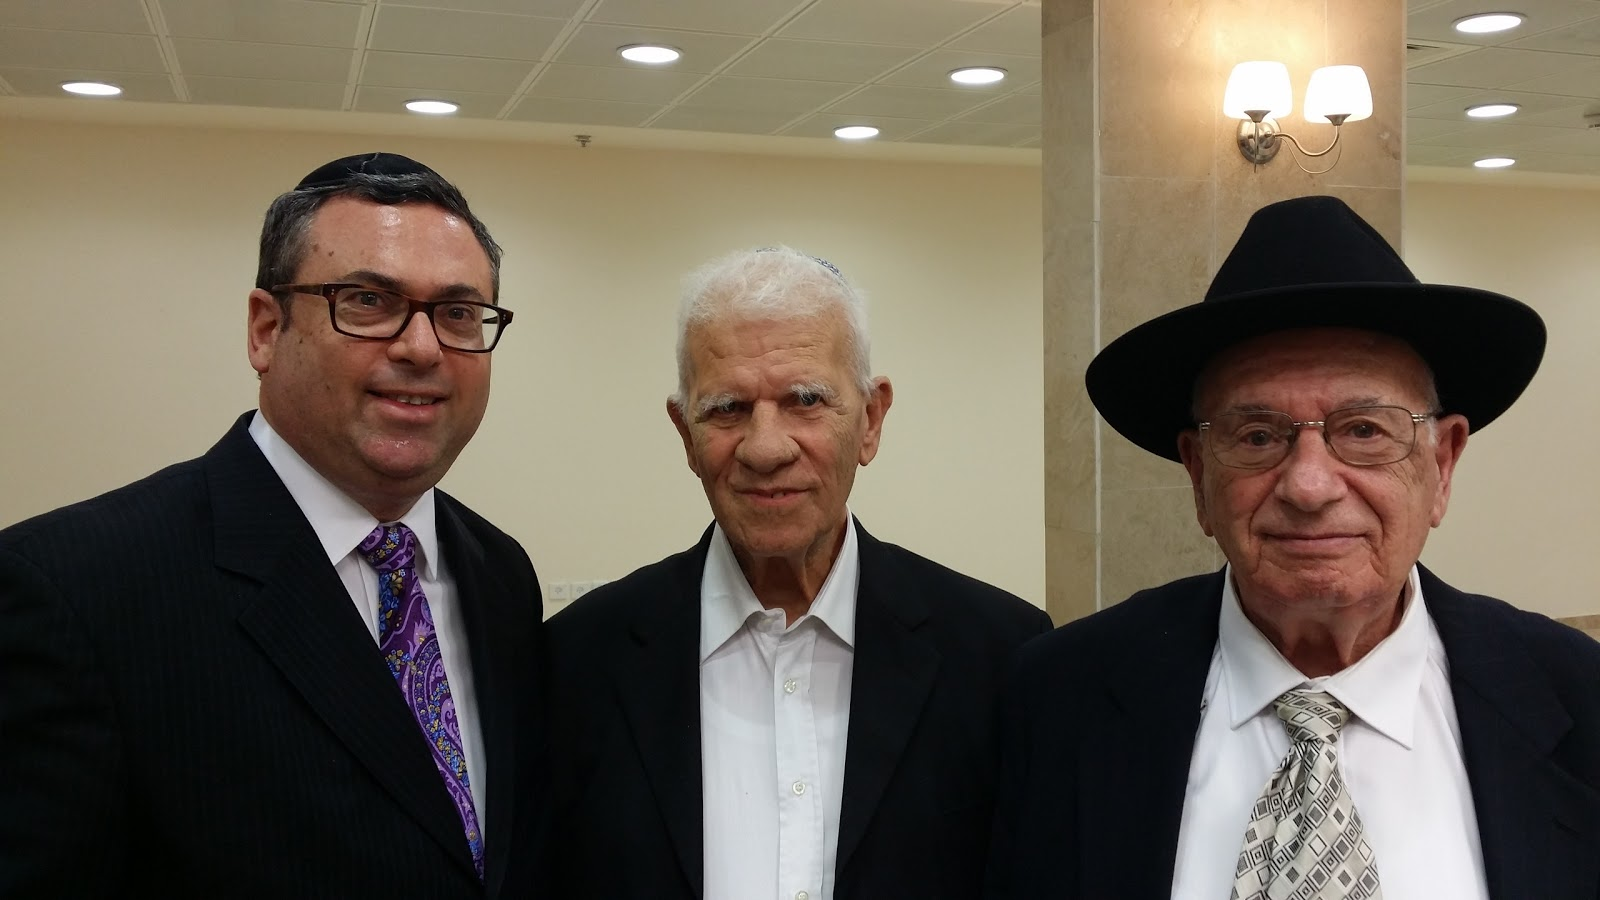 Civil Trial Attorney Baruch C. Cohen meets Moshe Mandelbaum, former governor of the Bank of Israel - Who's signature was on all Israeli currency